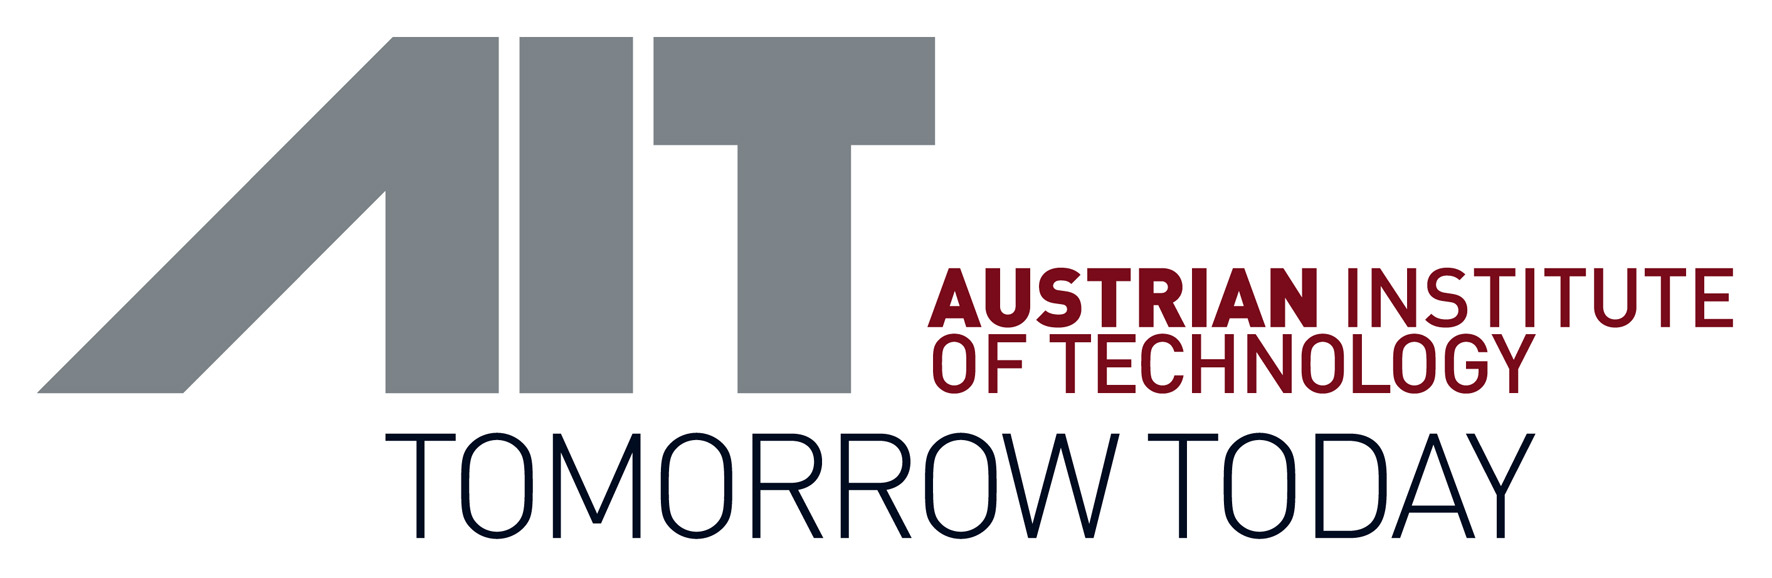 Logo AIT Austrian Institute of Technology GmbH